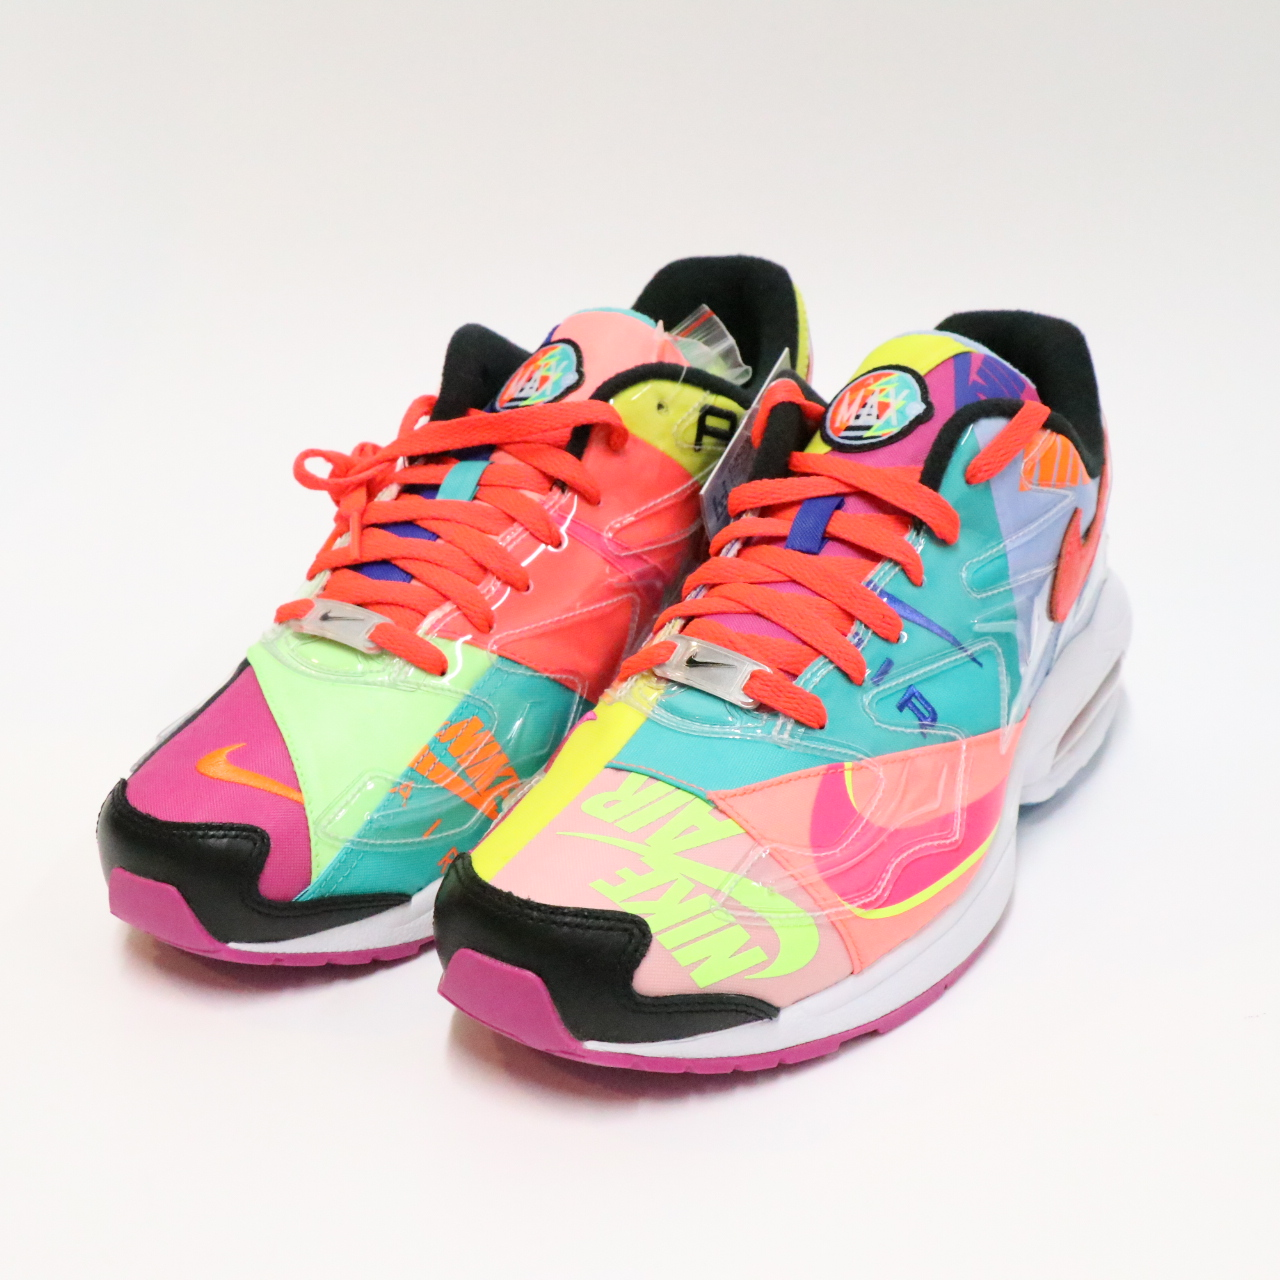 AIR MAX 2 LIGHT QS Atmos Limited CJ6200-001